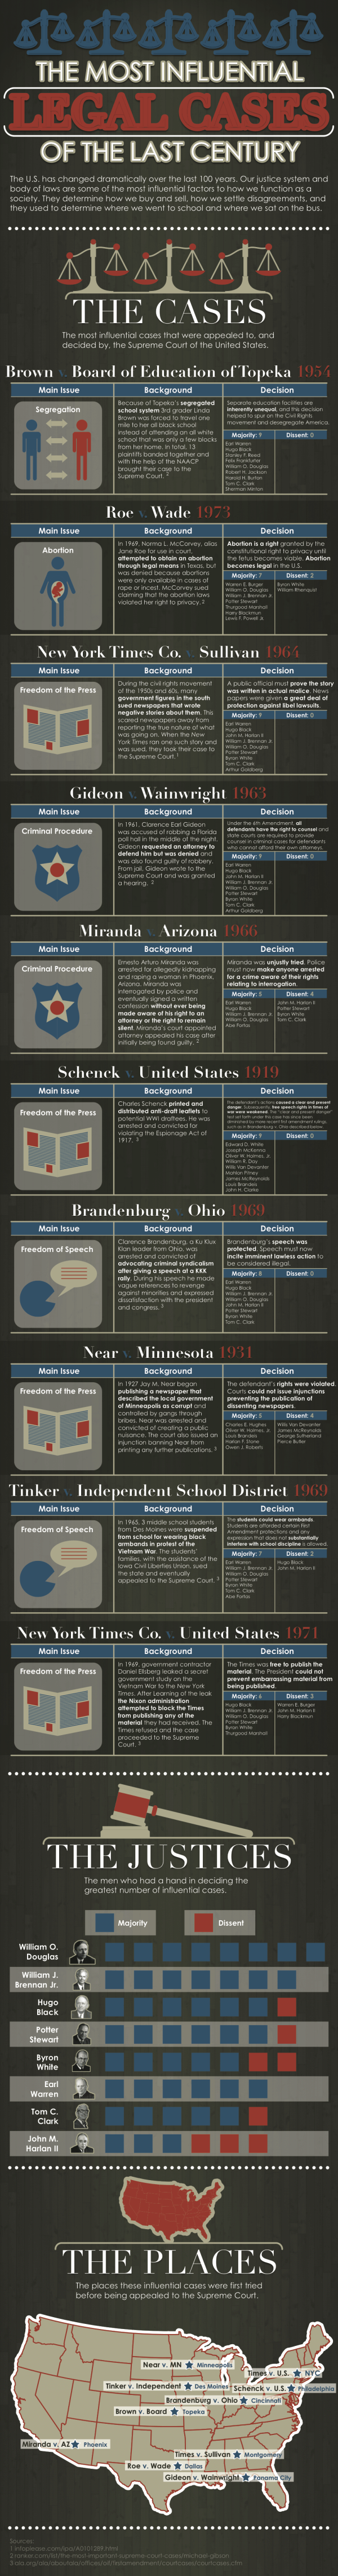 most influential legal cases of the last century